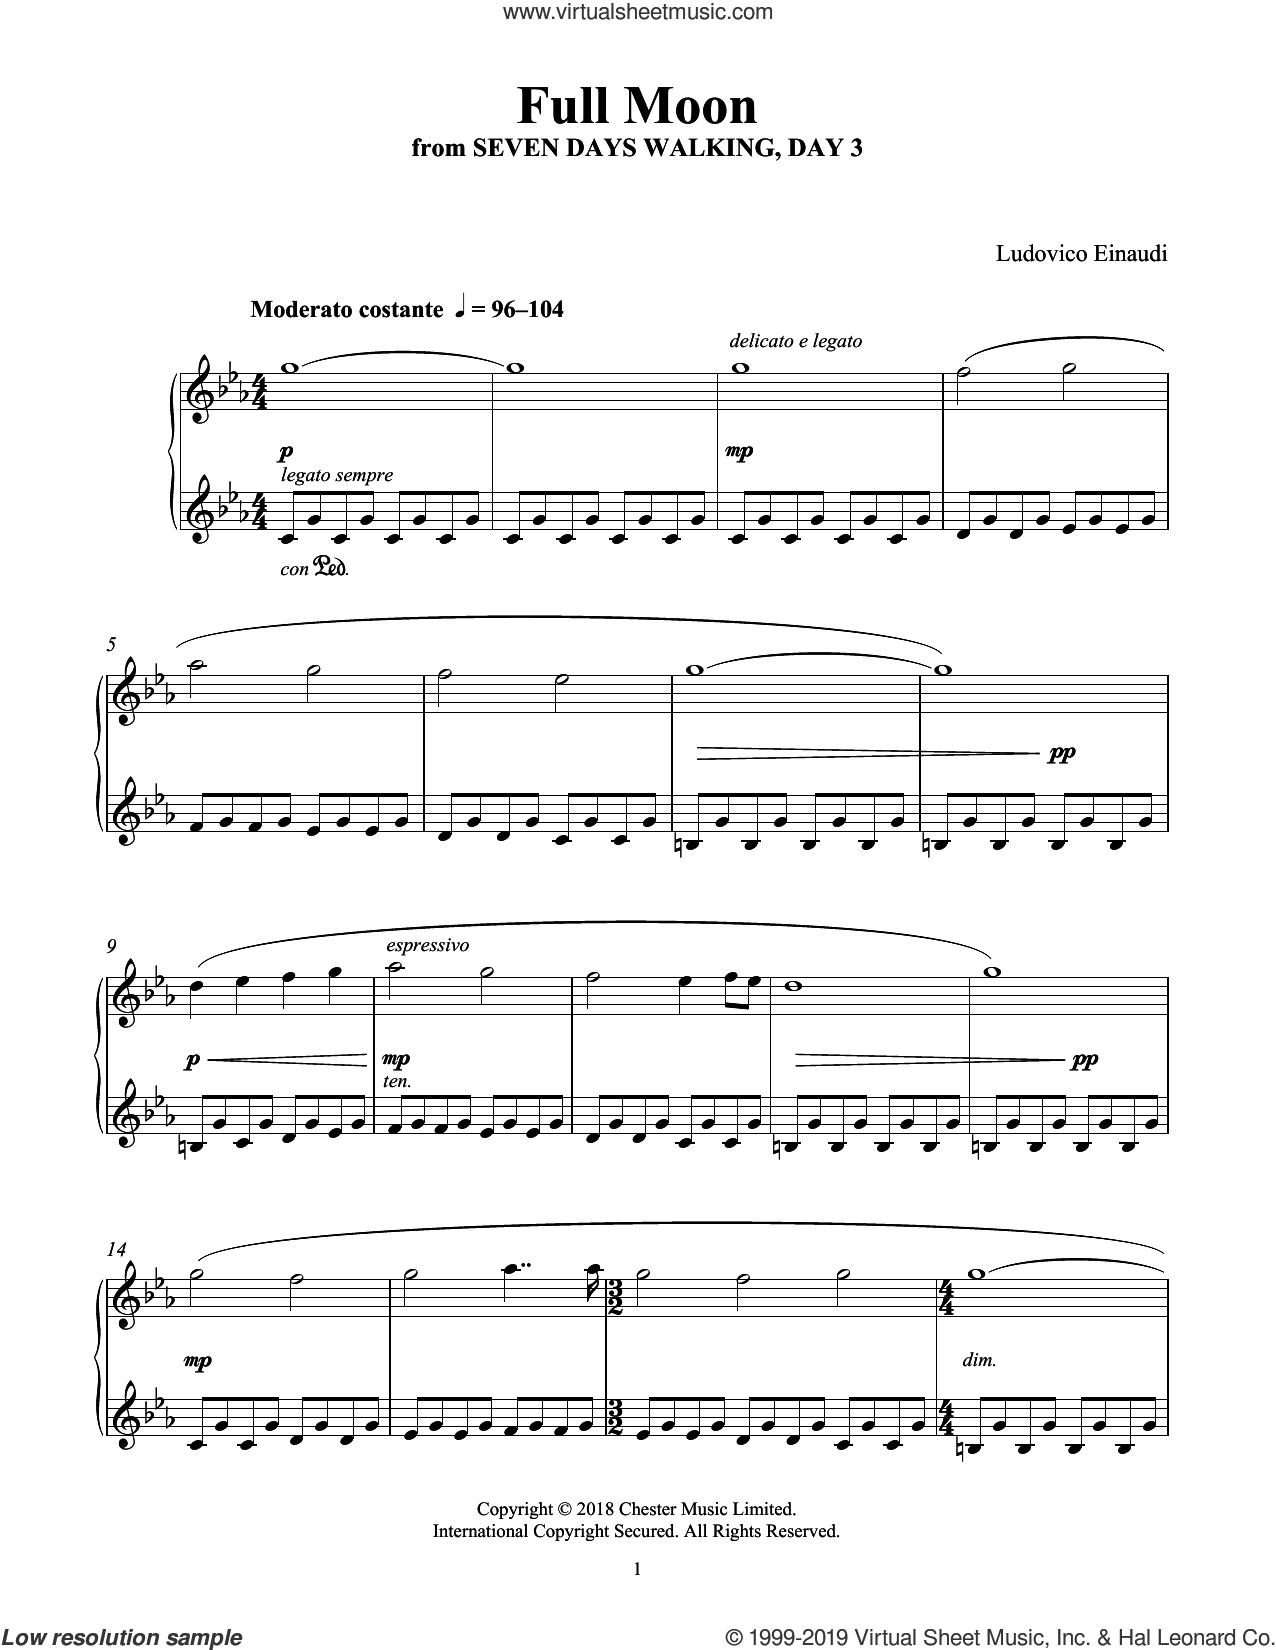 Full Moon (from Seven Days Walking: Day 3) sheet music for piano solo by Ludovico Einaudi, classical score, intermediate skill level